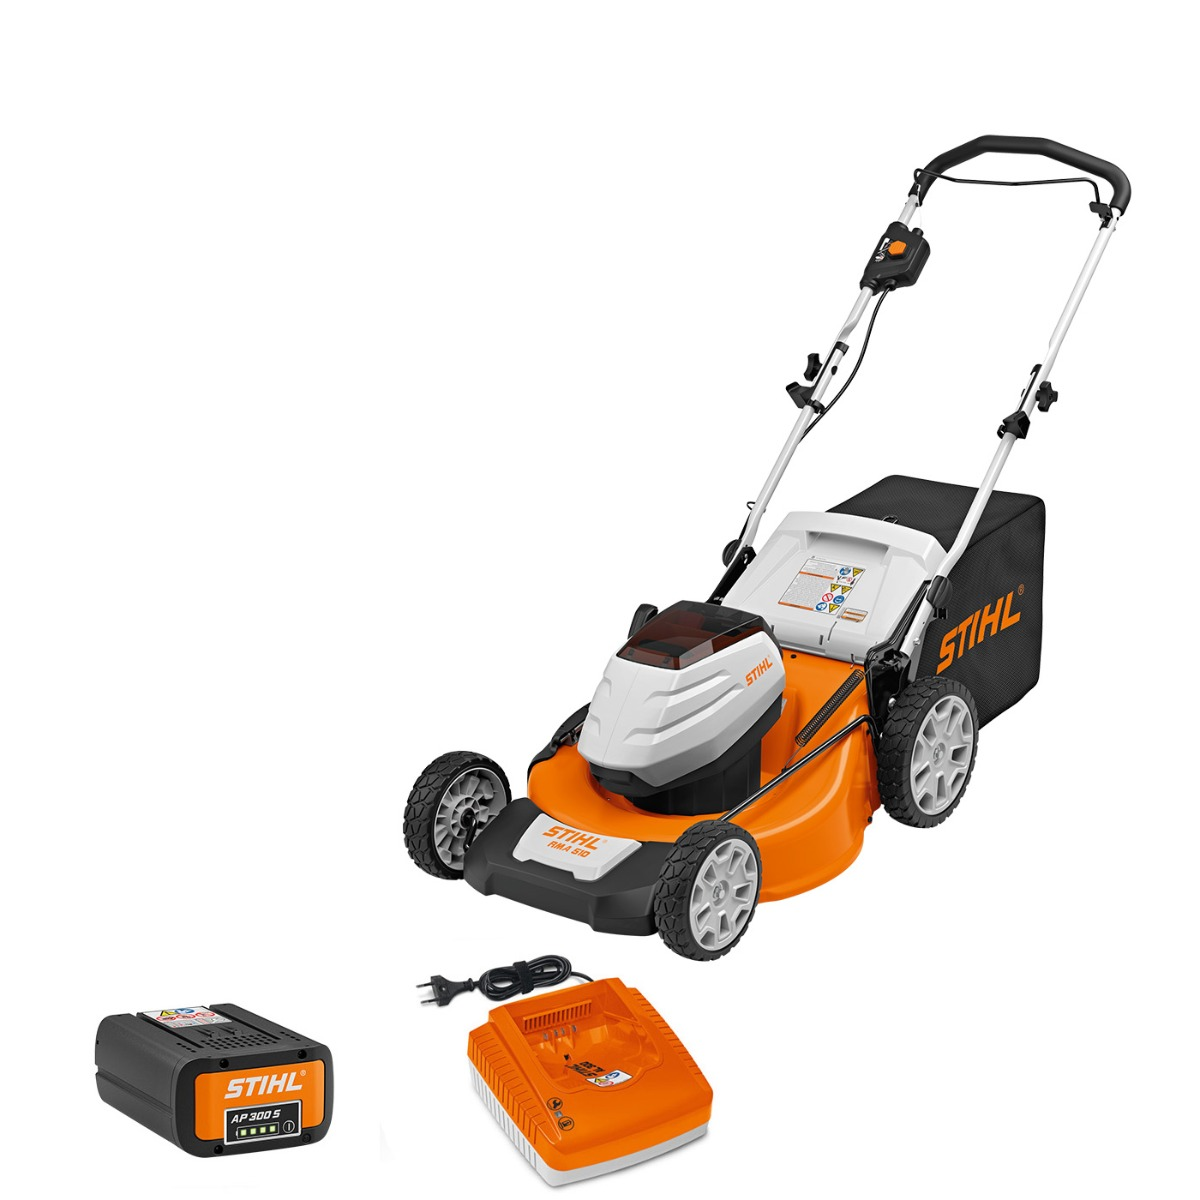 STIHL RMA 510 AP BATTERY LAWNMOWER KIT